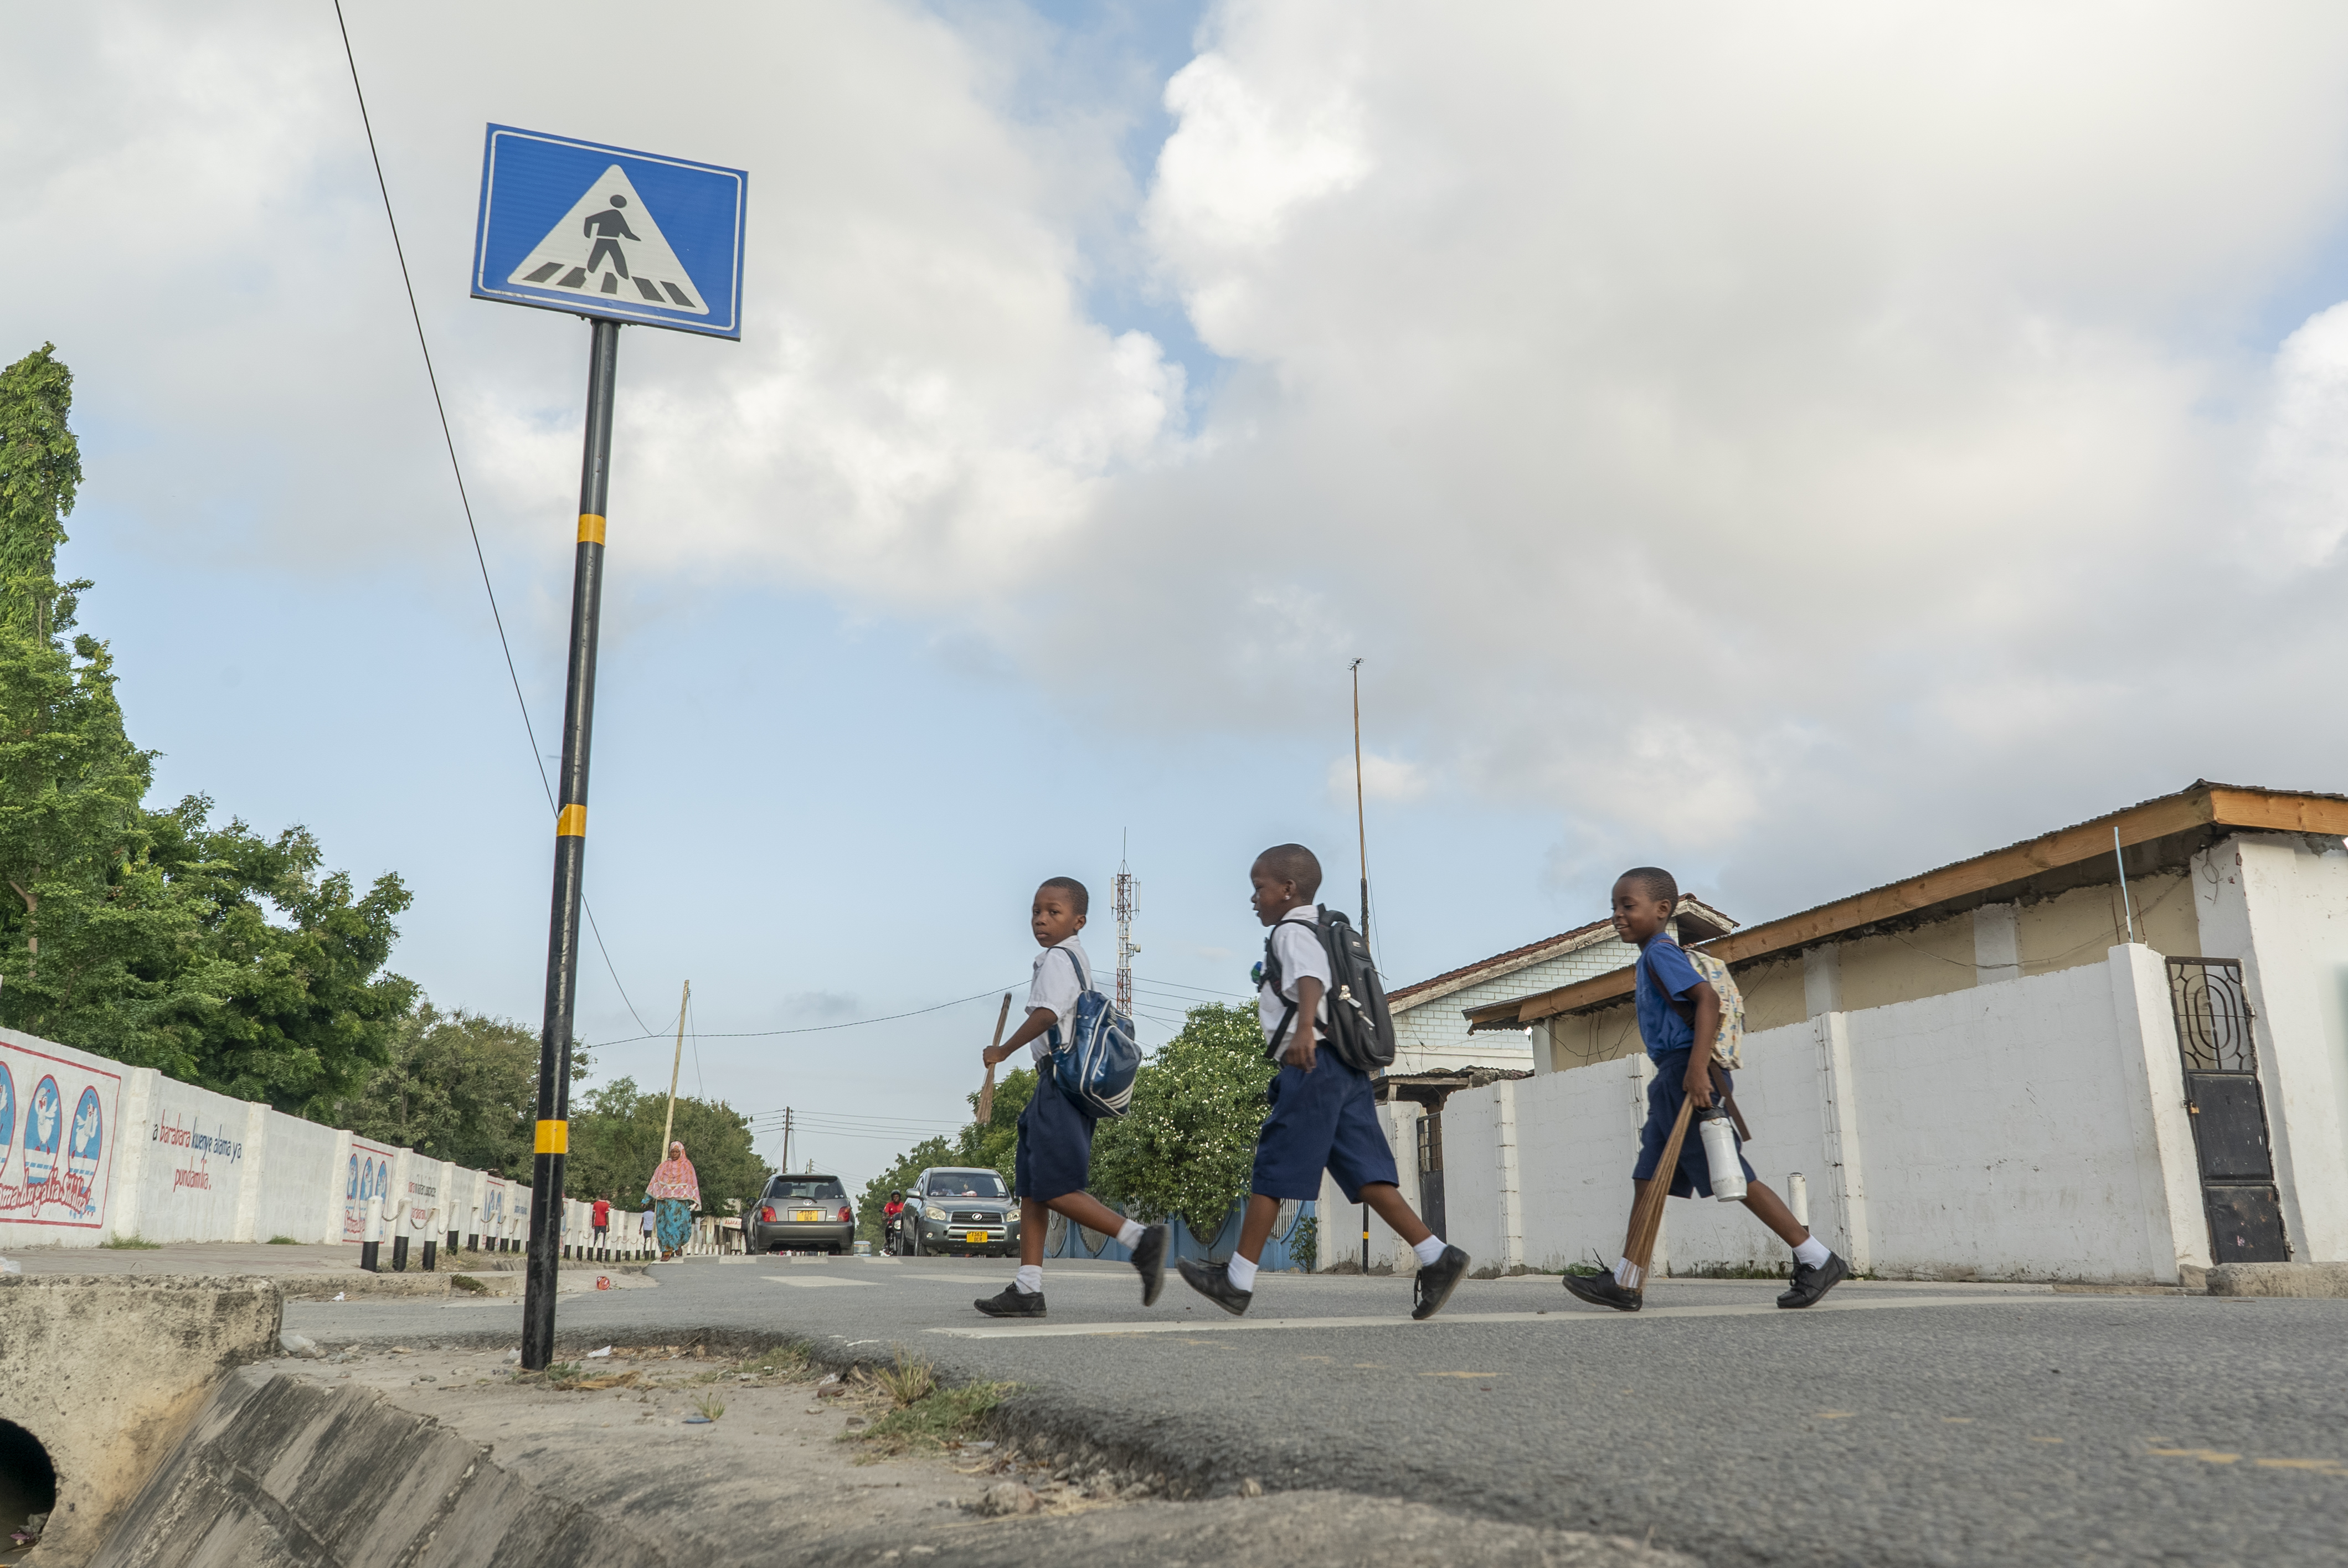 <p>Children in sub-Saharan African are twice as likely to die in a road crash than kids in other parts of the world. Designated crossings like the one above help make students\' walks to school safer. Photo by Kyle Laferriere</p>